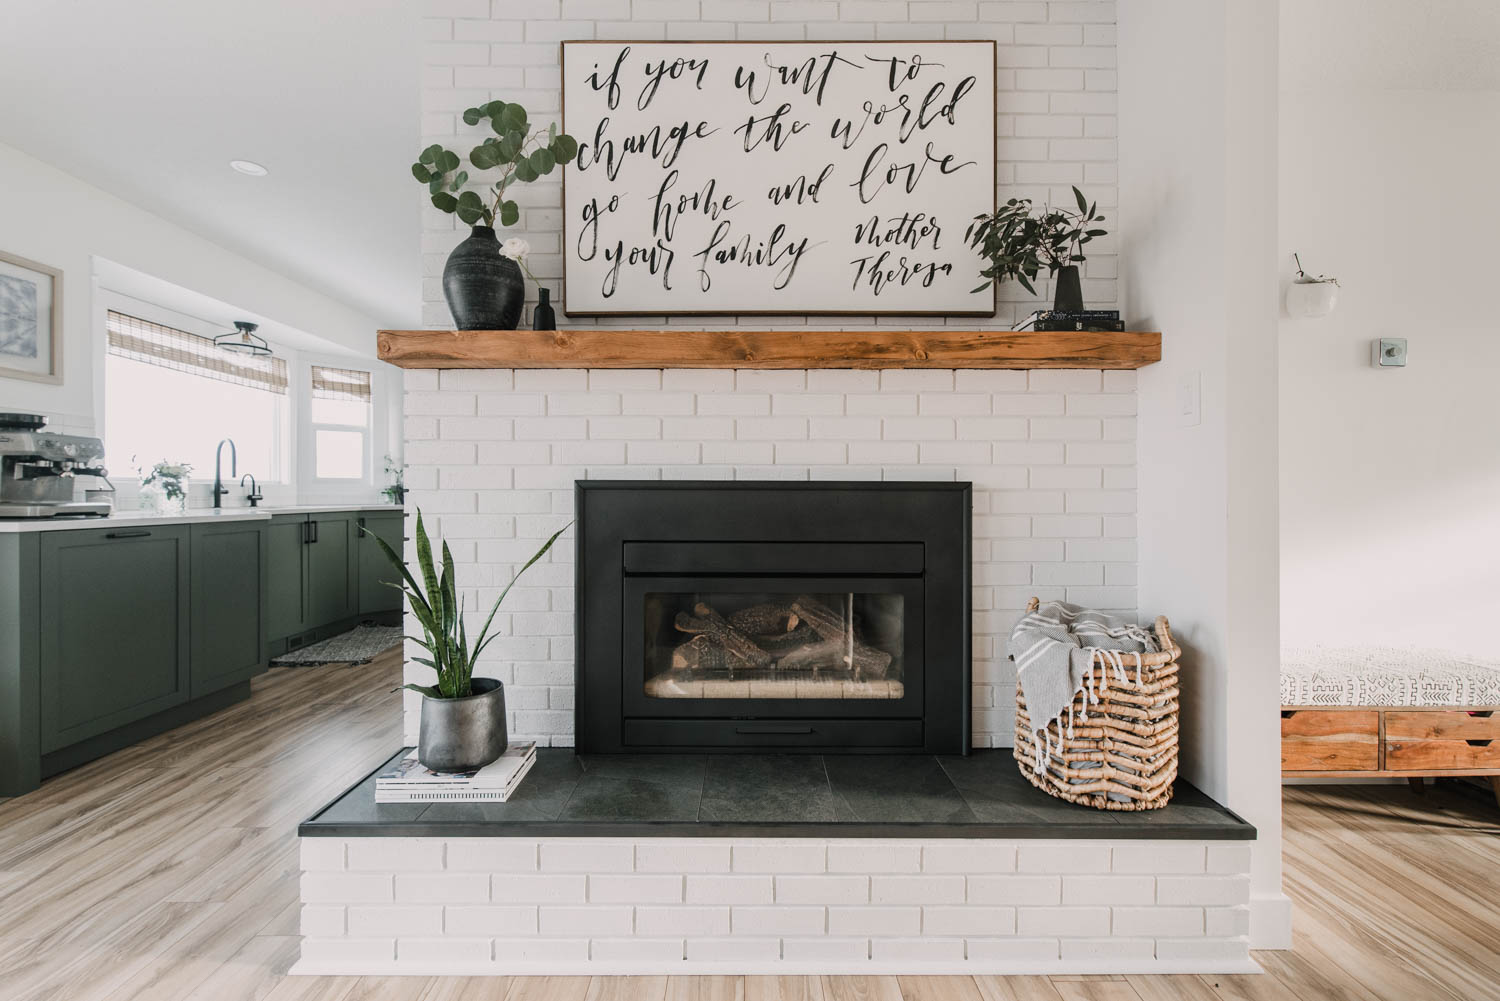 Painted brick fireplace with rustic wood mantel and tile hearth